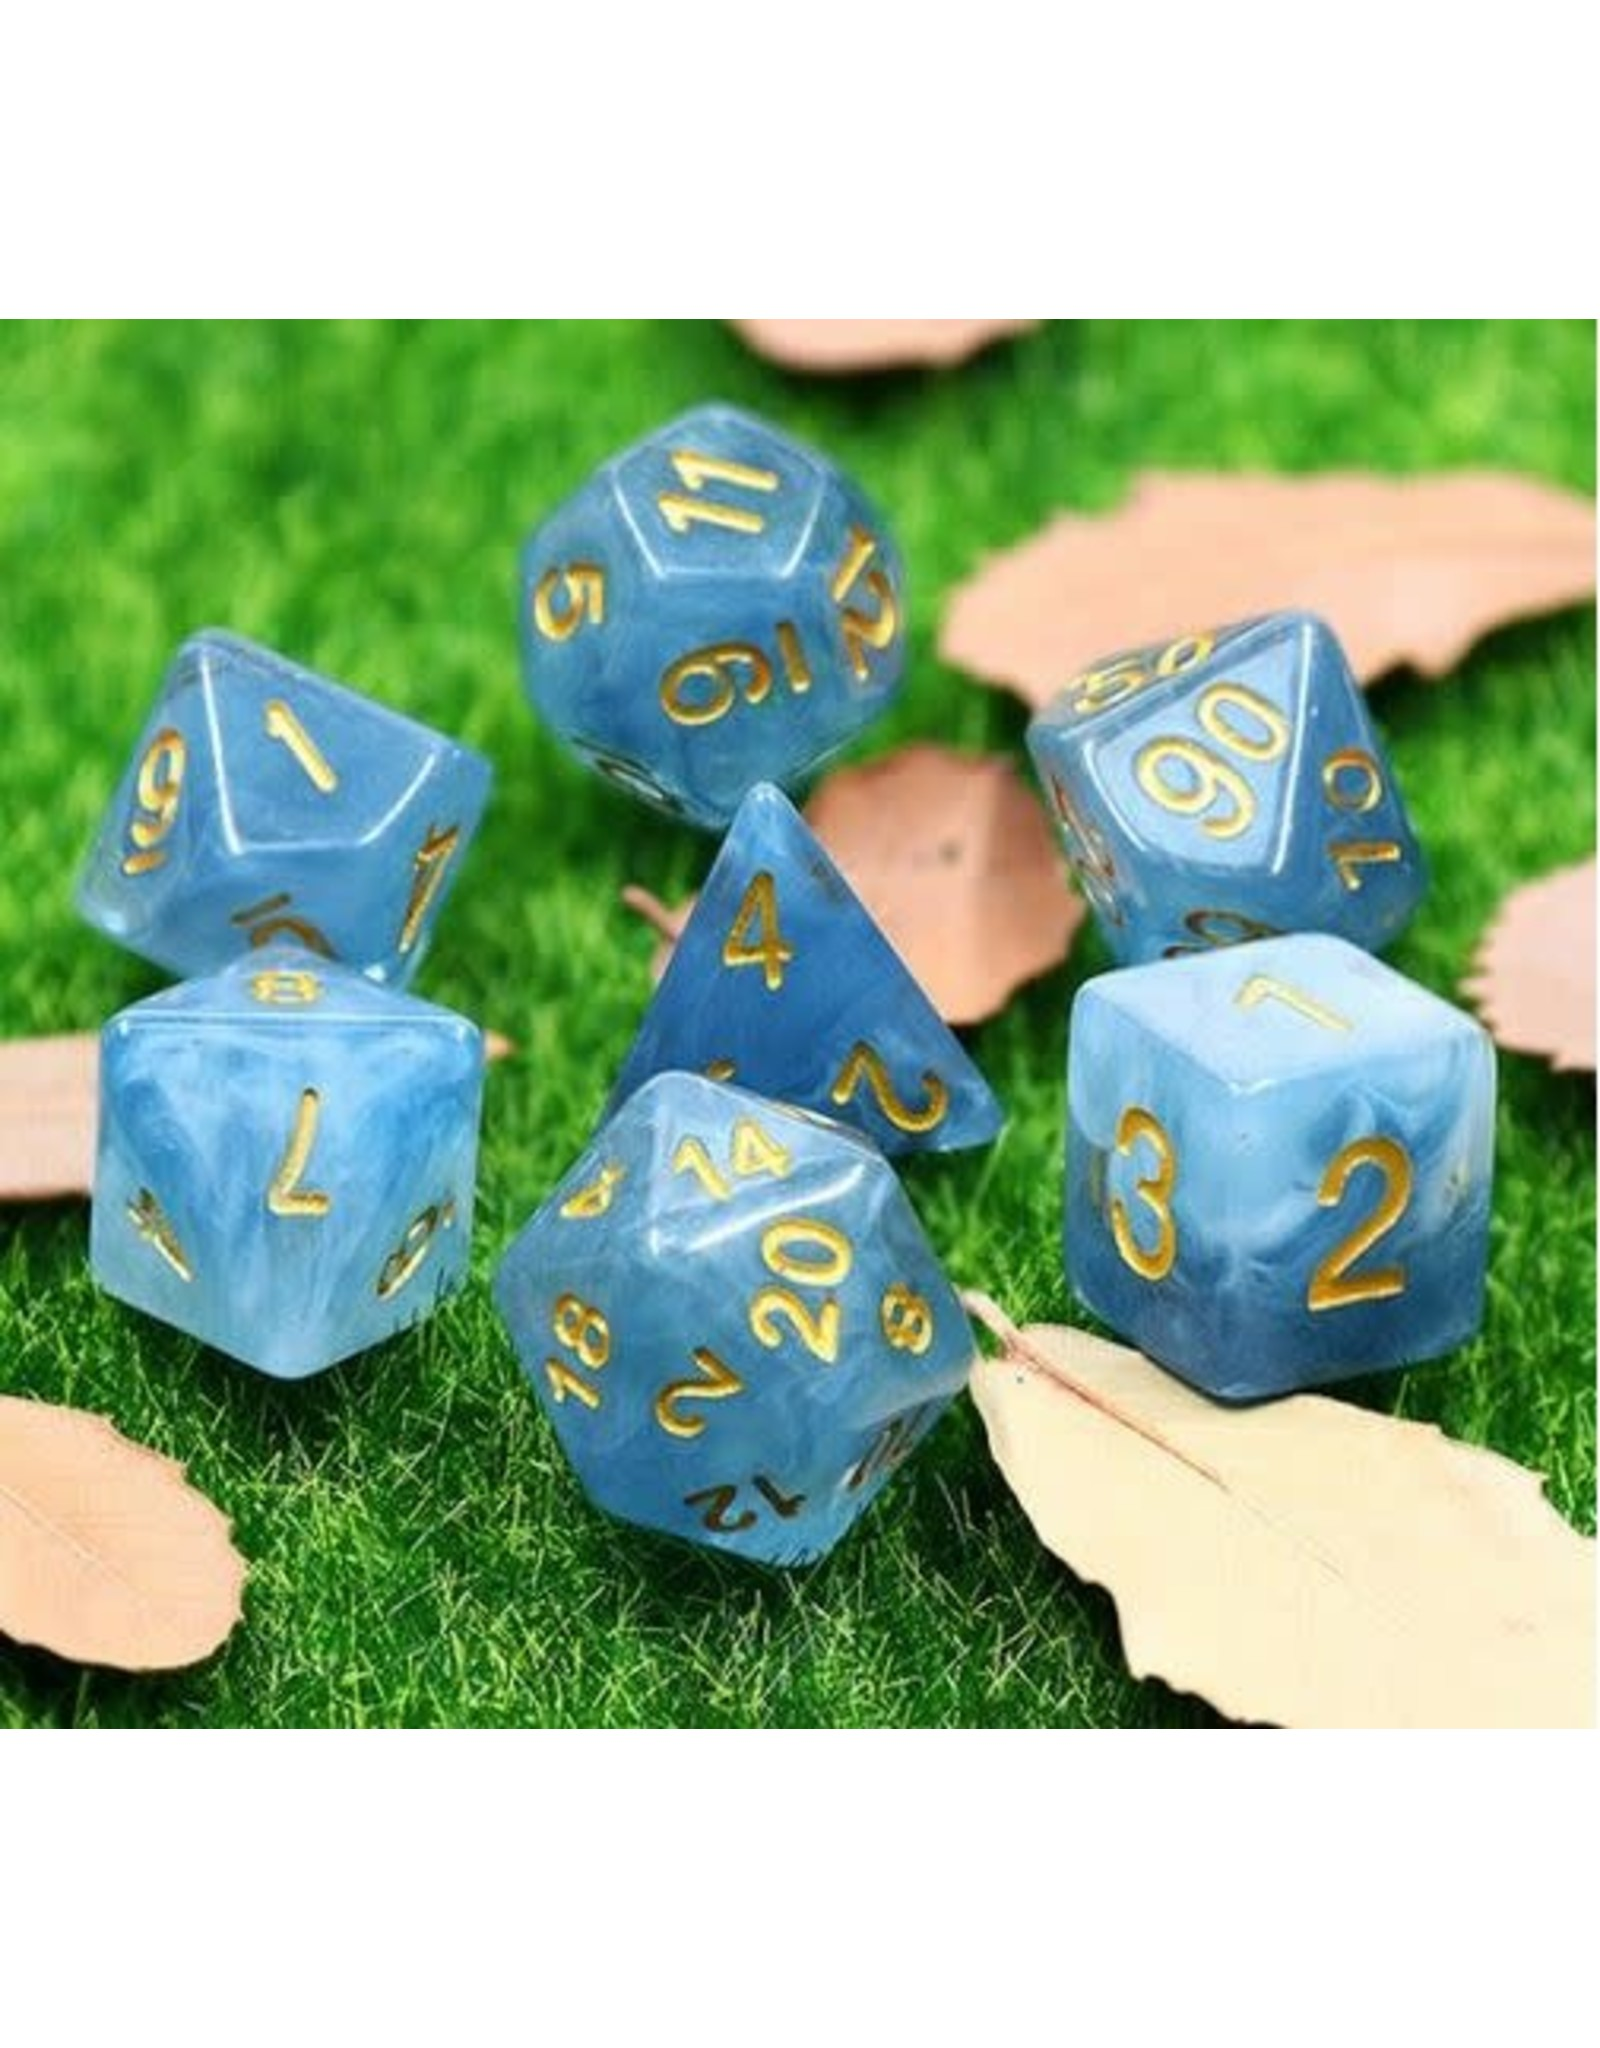 HD Dice 7-Set Jade Blue w/Gold Numbers